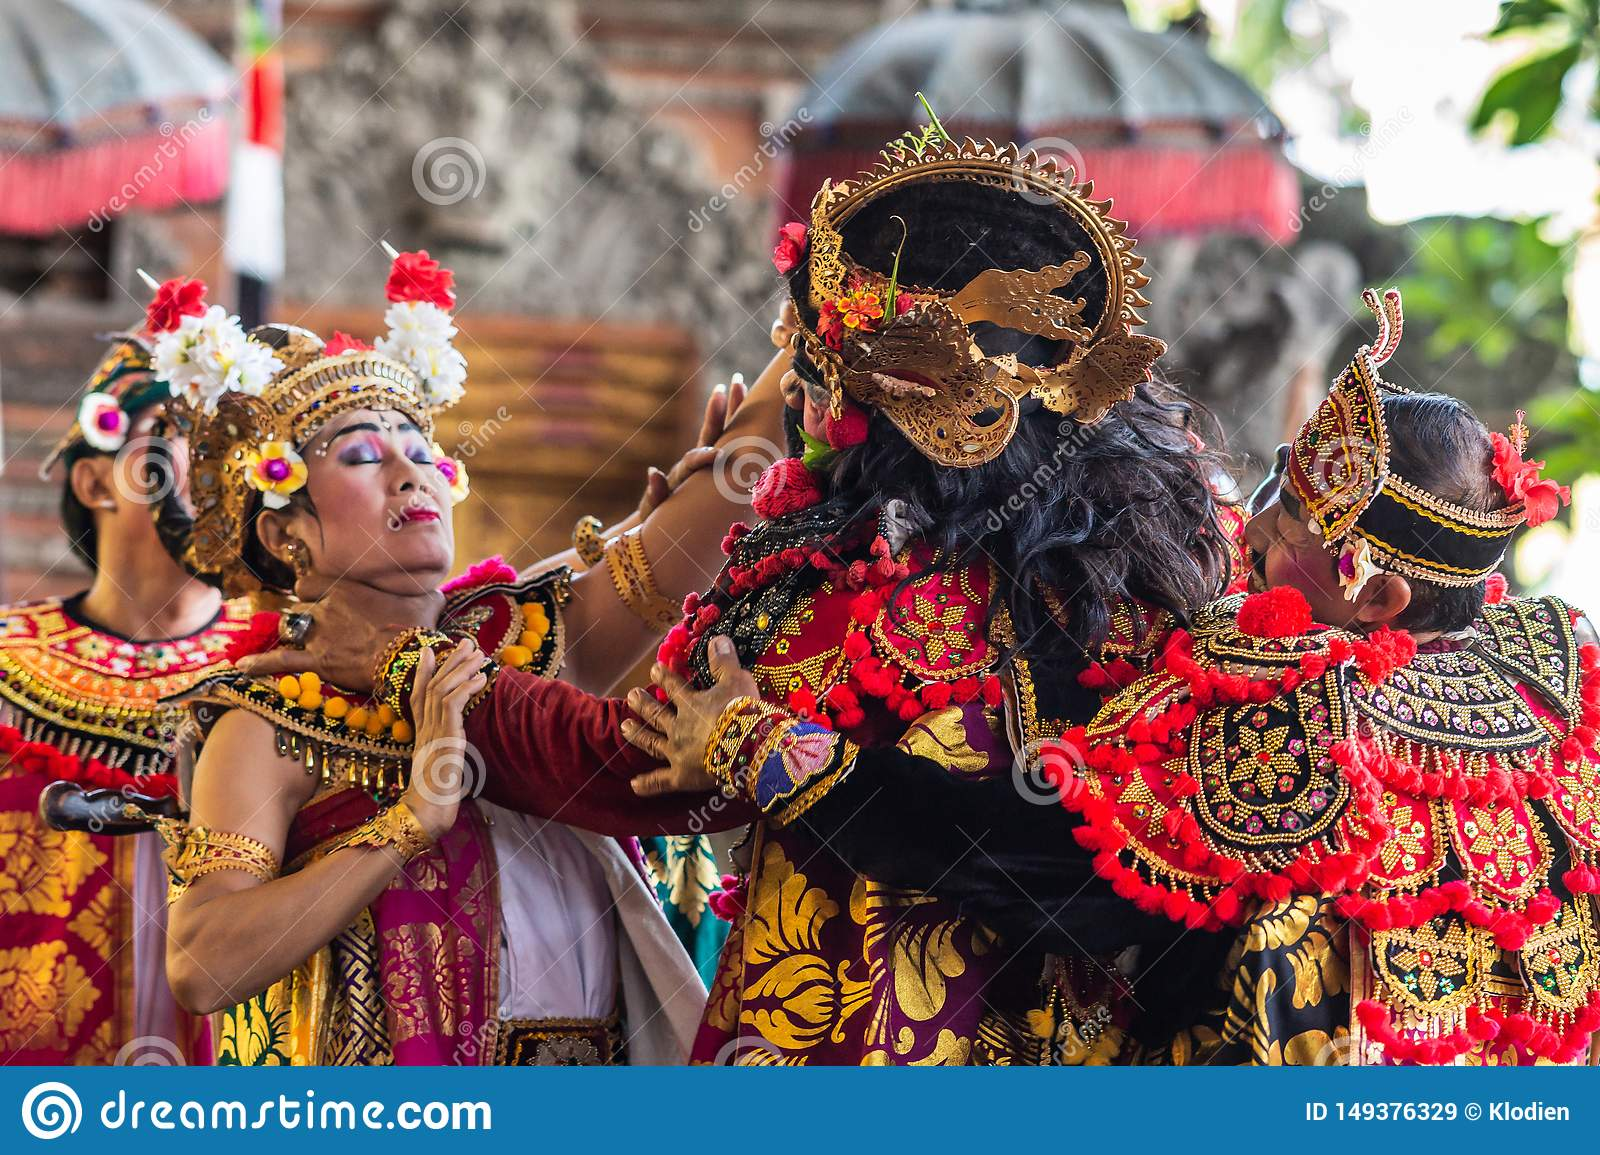 king strangles queen at sahadewa barong dance studio in banjar gelulung bali indonesia editorial stock image image of indonesia author 149376329 https www dreamstime com king strangles queen sahadewa barong dance studio banjar gelulung bali indonesia february mas village play stage setting image149376329